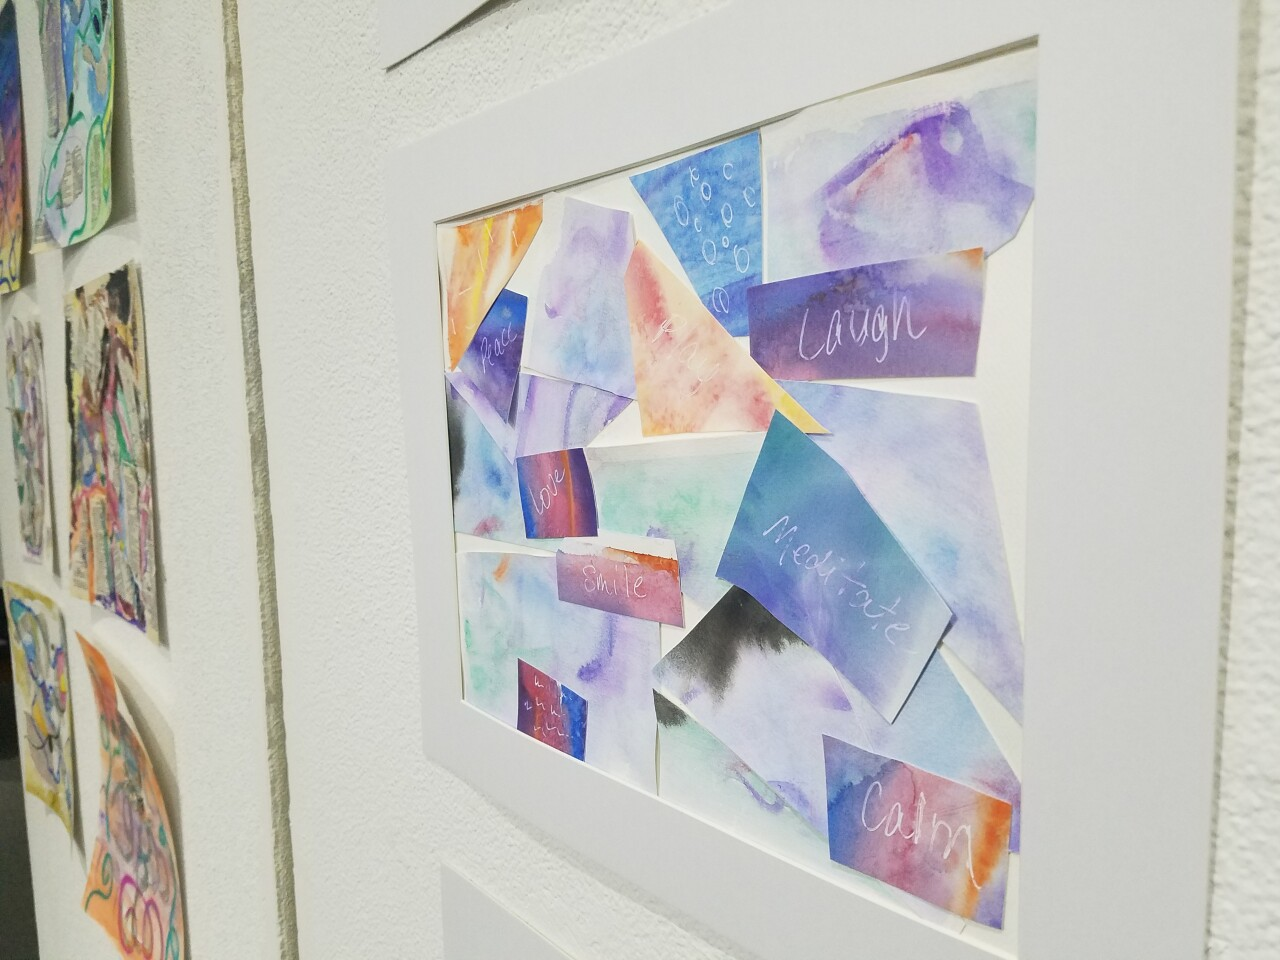 'Healing Art' features the works of behavioral health patients at St. Peter's Health